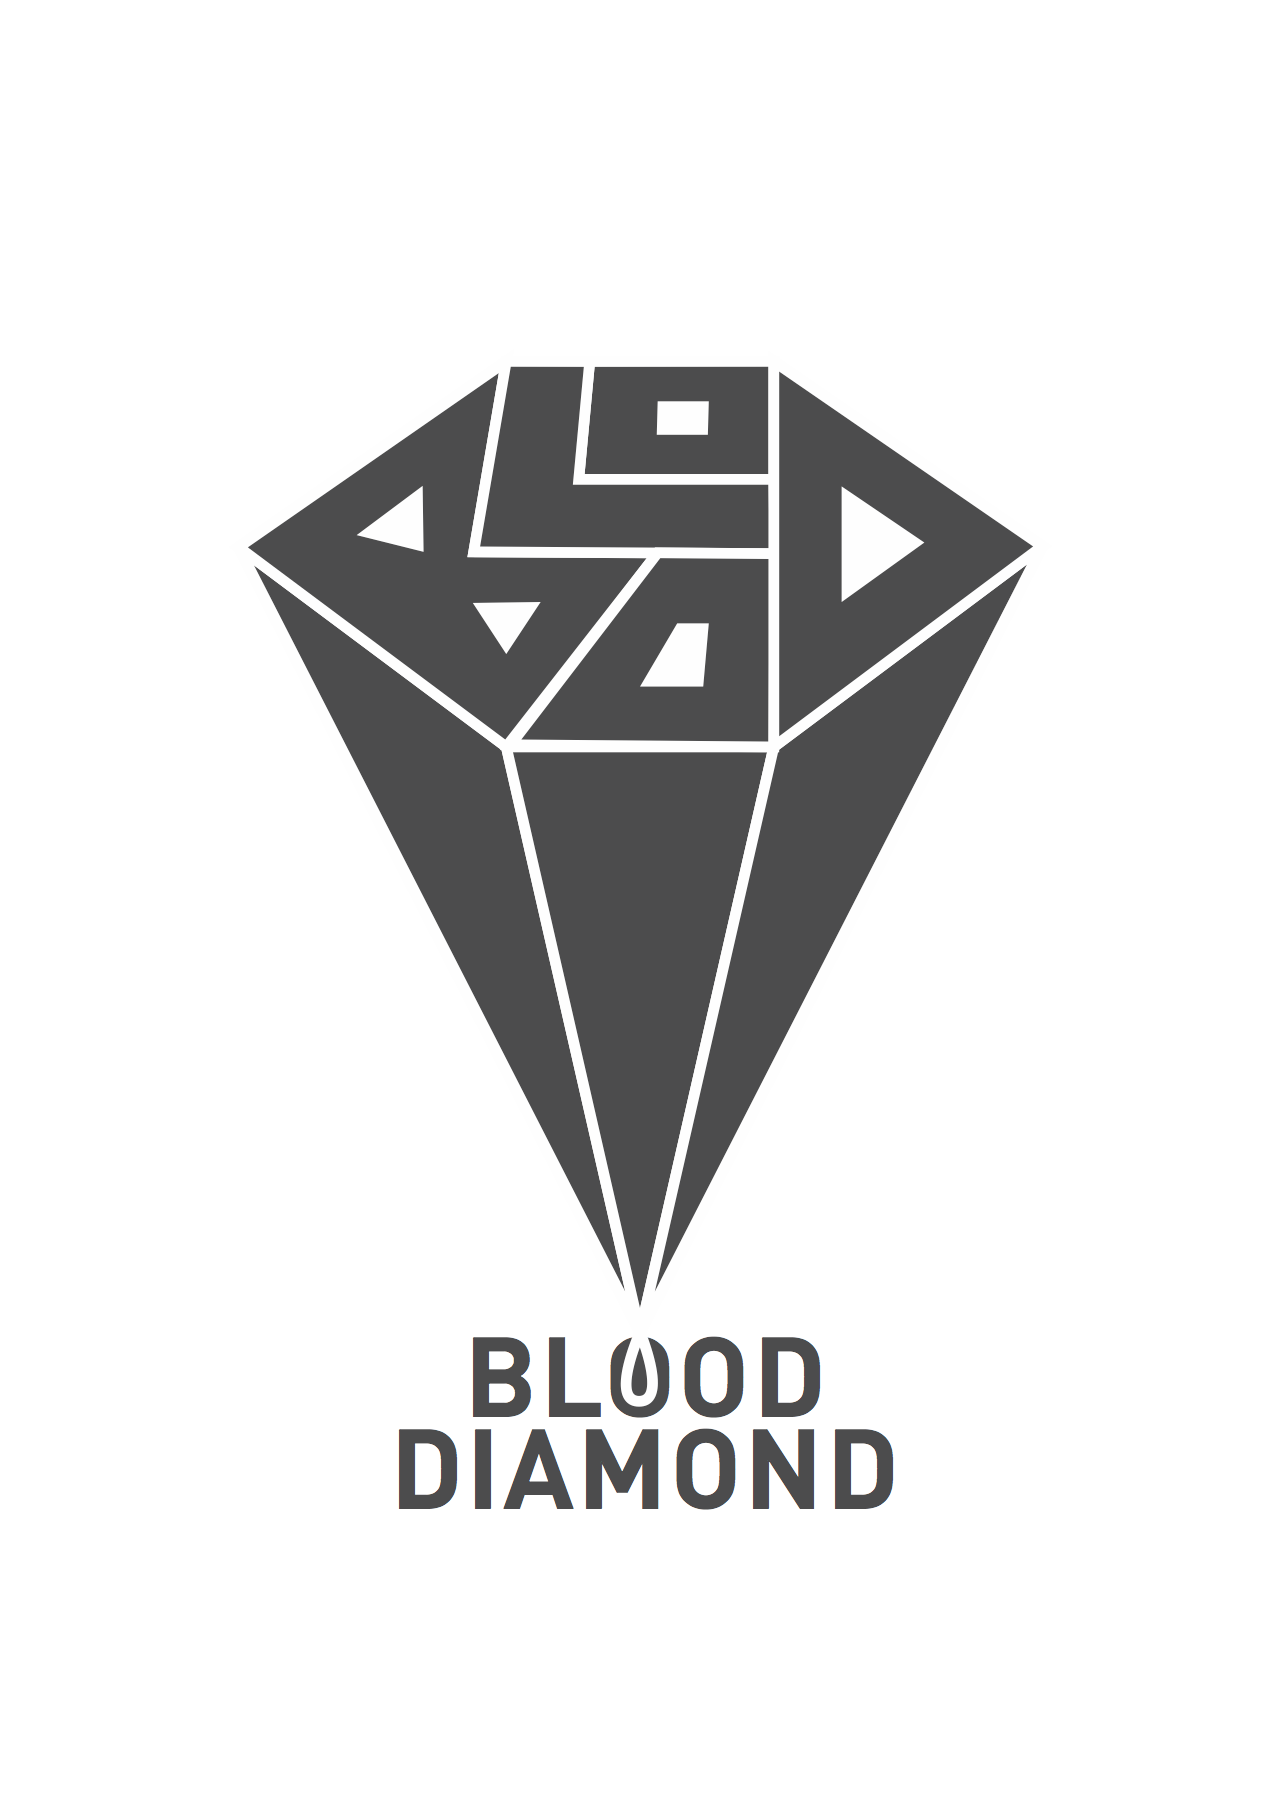 m graphicdesign logotype typography art design brand blood diamond graphic design